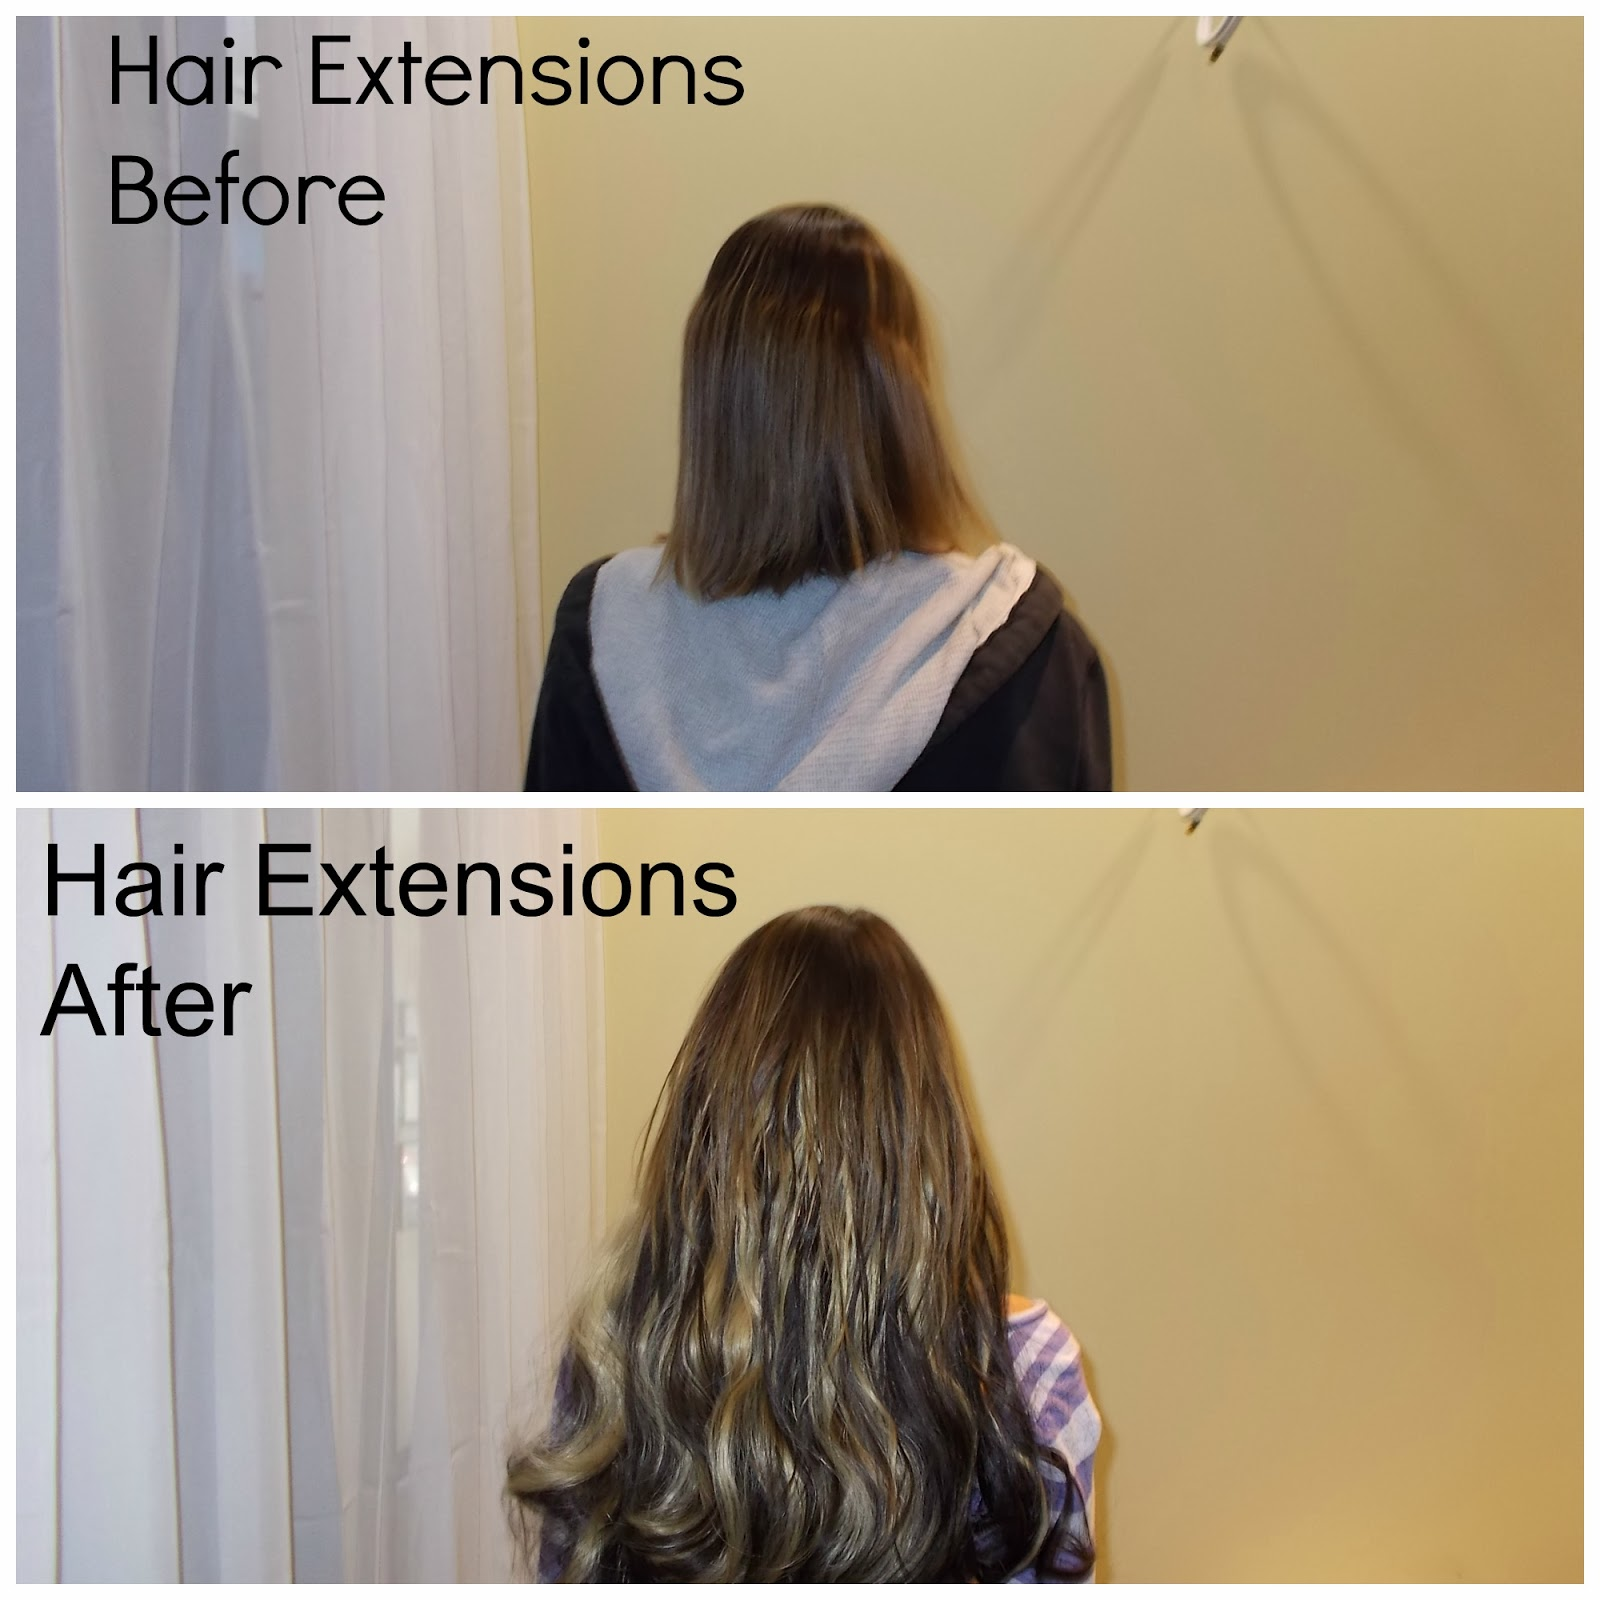 Hair extensions clip in vs permanent